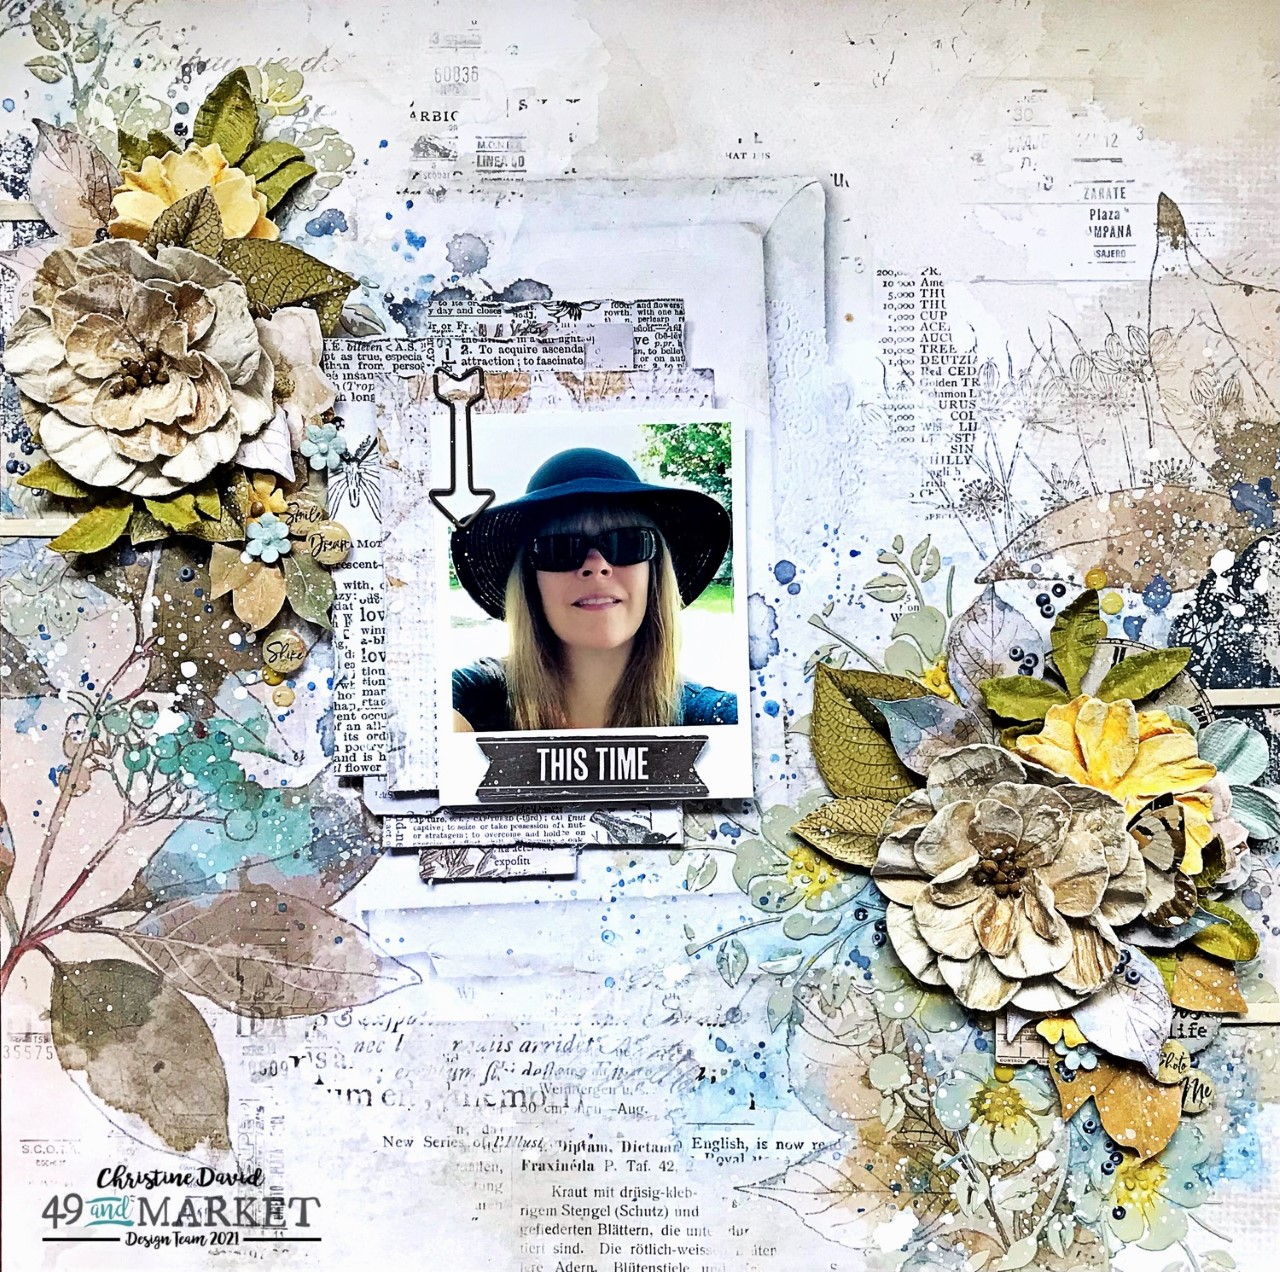 This time - Layout by Christine David